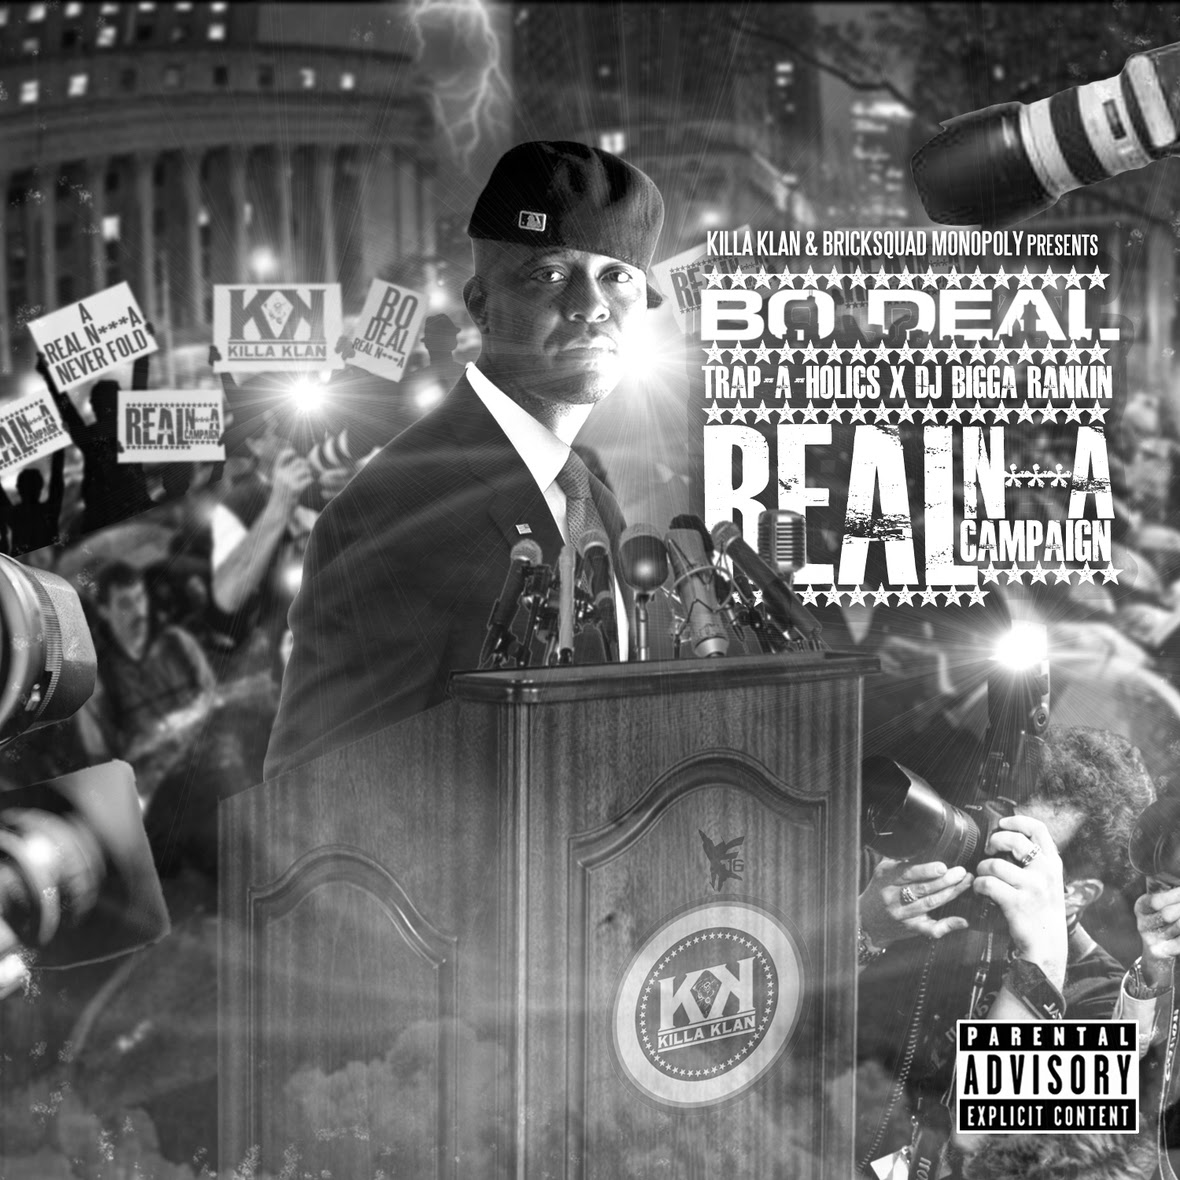 Bo Deal real Nigga Campaign